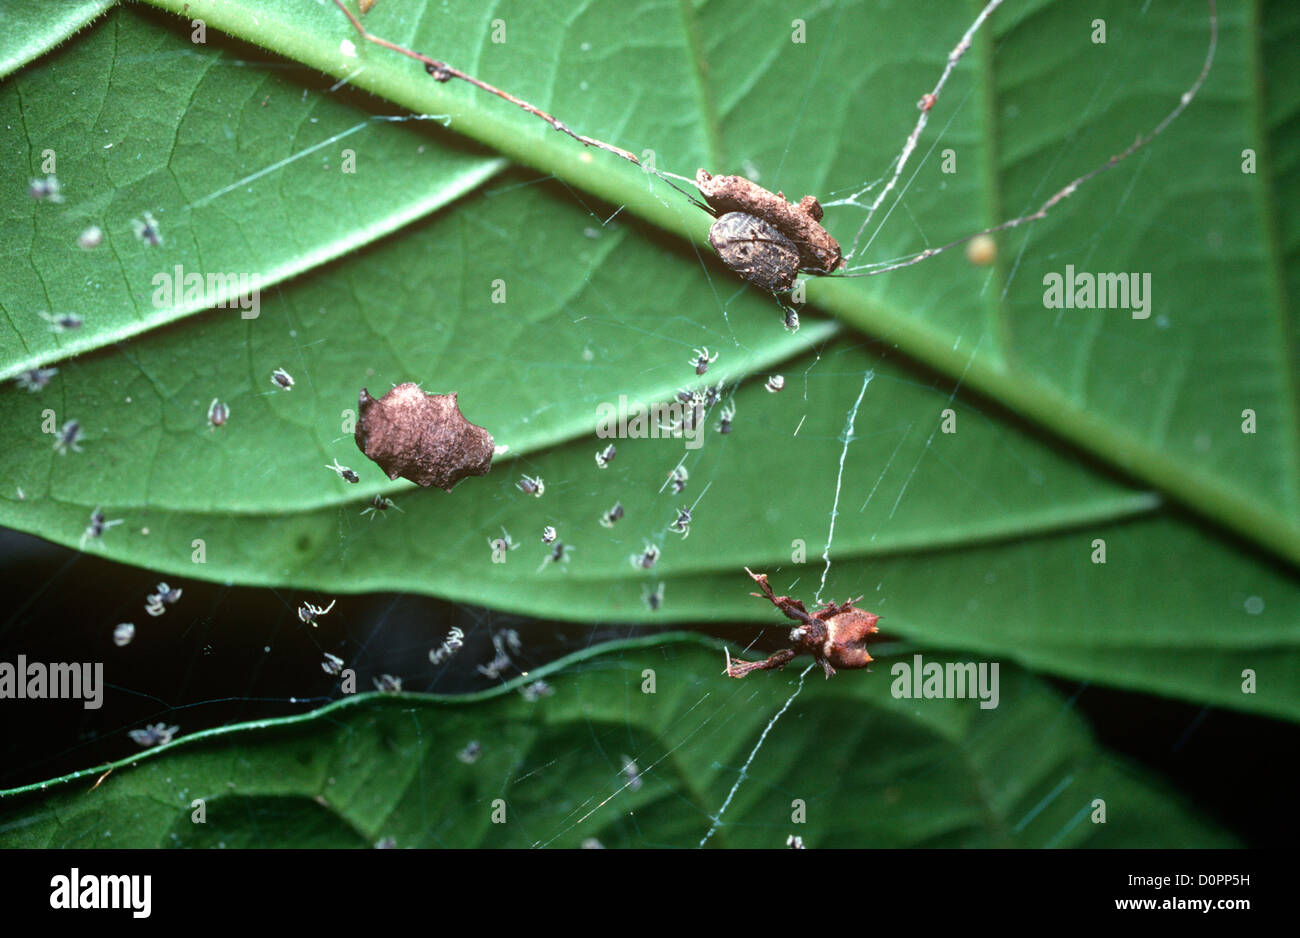 Feather-footed spider (Uloborus lugubris) female resembling dead leaf in web (egg-sac (left) and newly hatched babies) - Stock Image